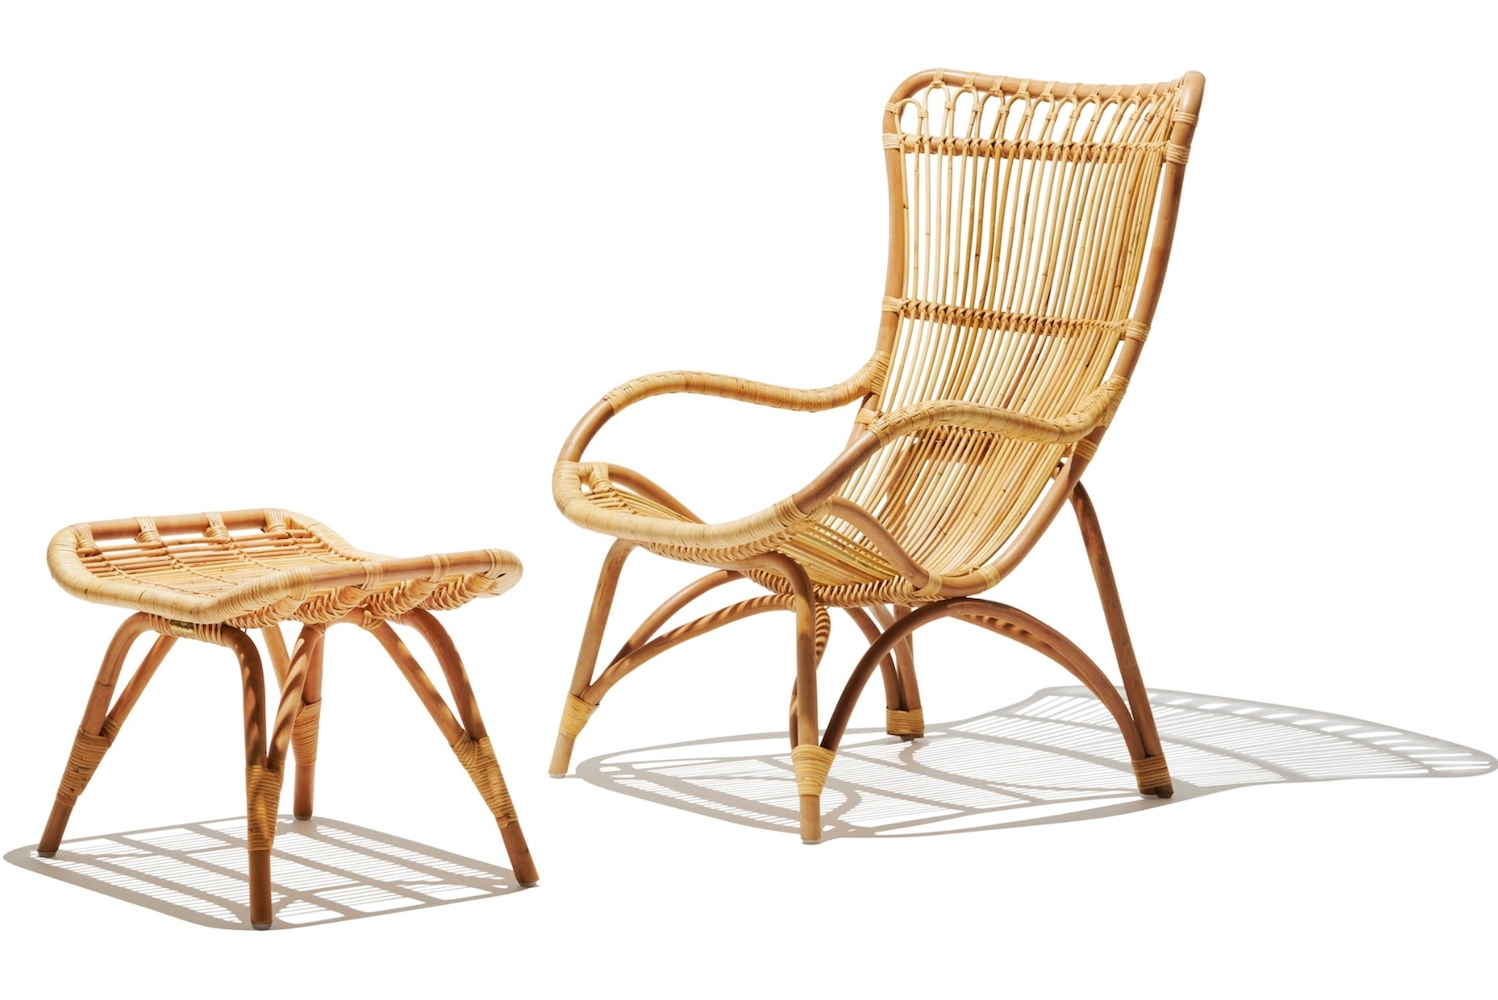 The Monaco collection is made of rattan.